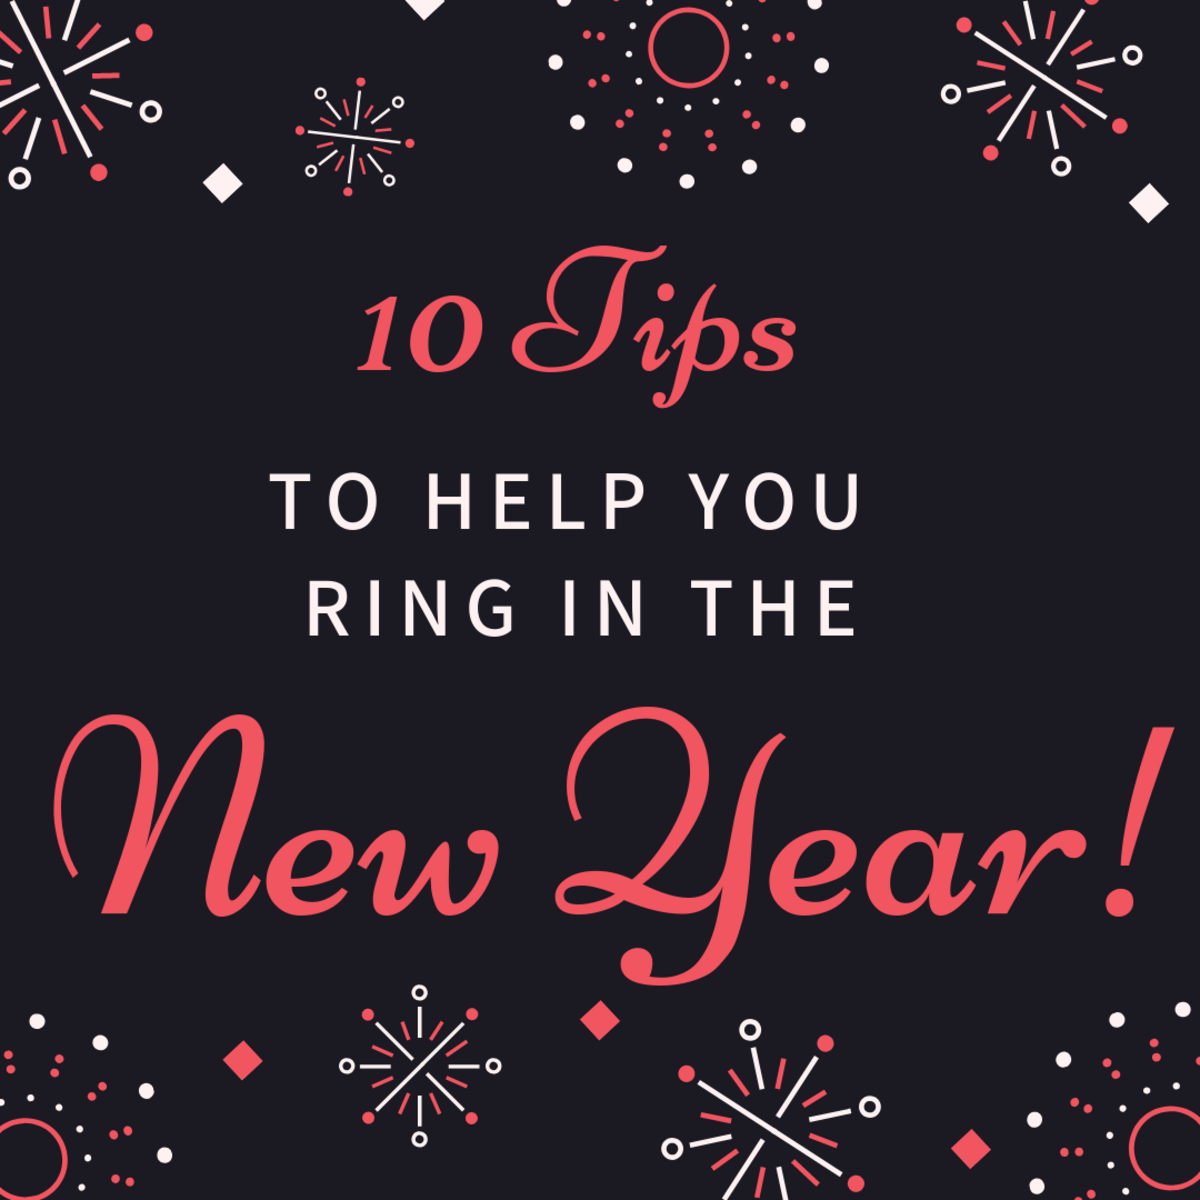 10 Simple Ways to Kick-Start the New Year